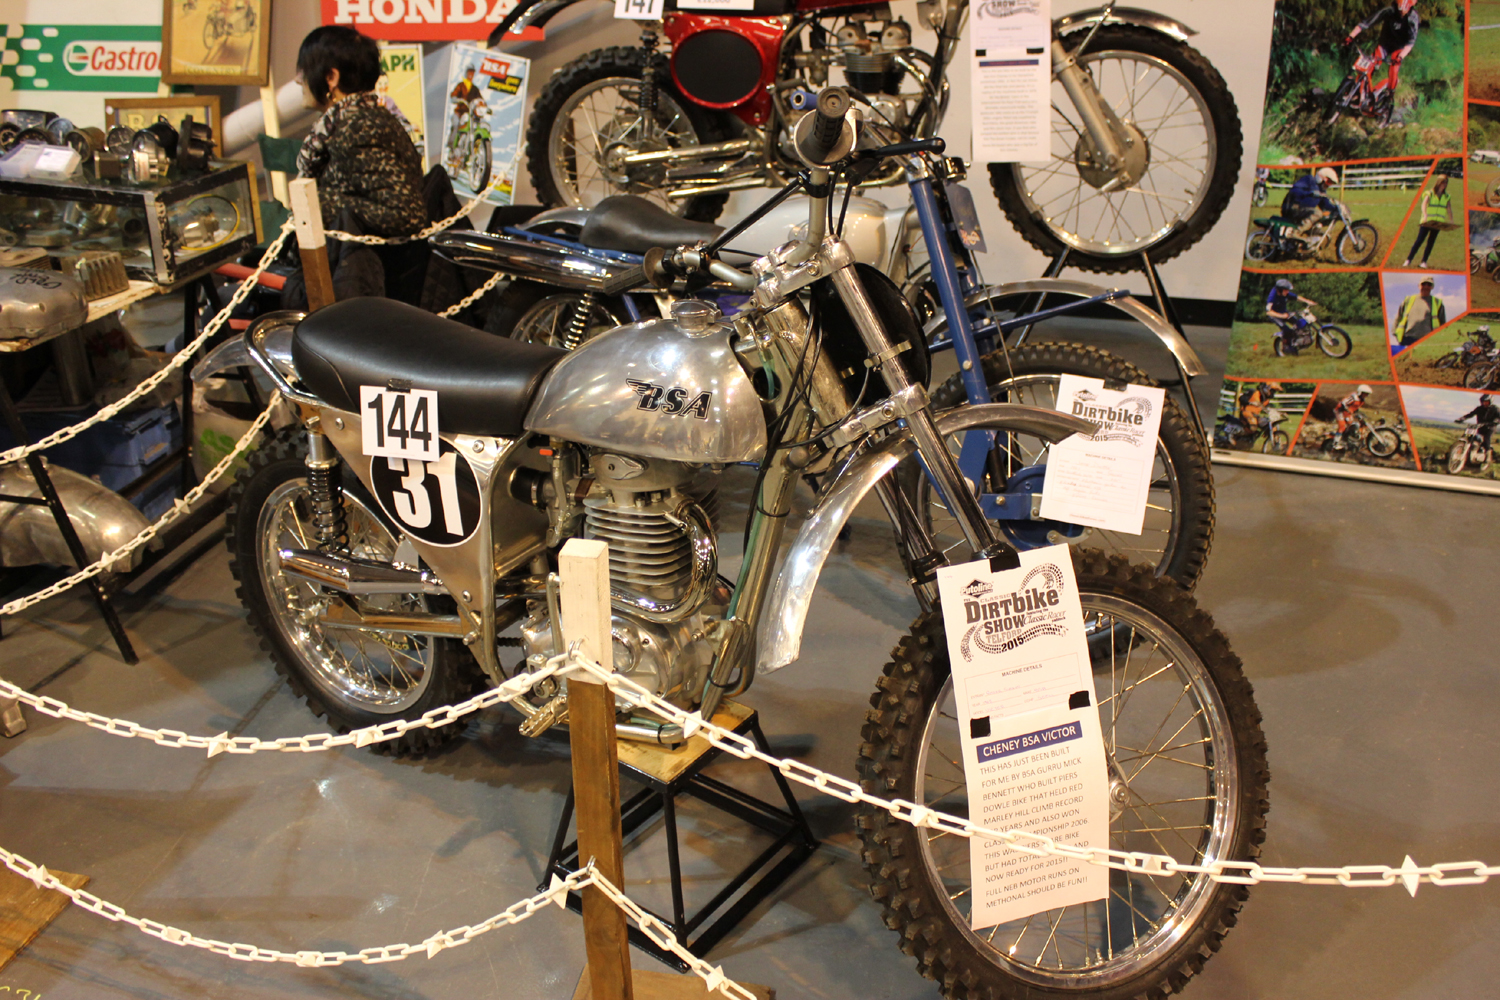 classicdirtbikerider.com-photo by Mr J-2015 Telford classic dirt bike show-CHENEY BSA VICTOR SCRAMBLER